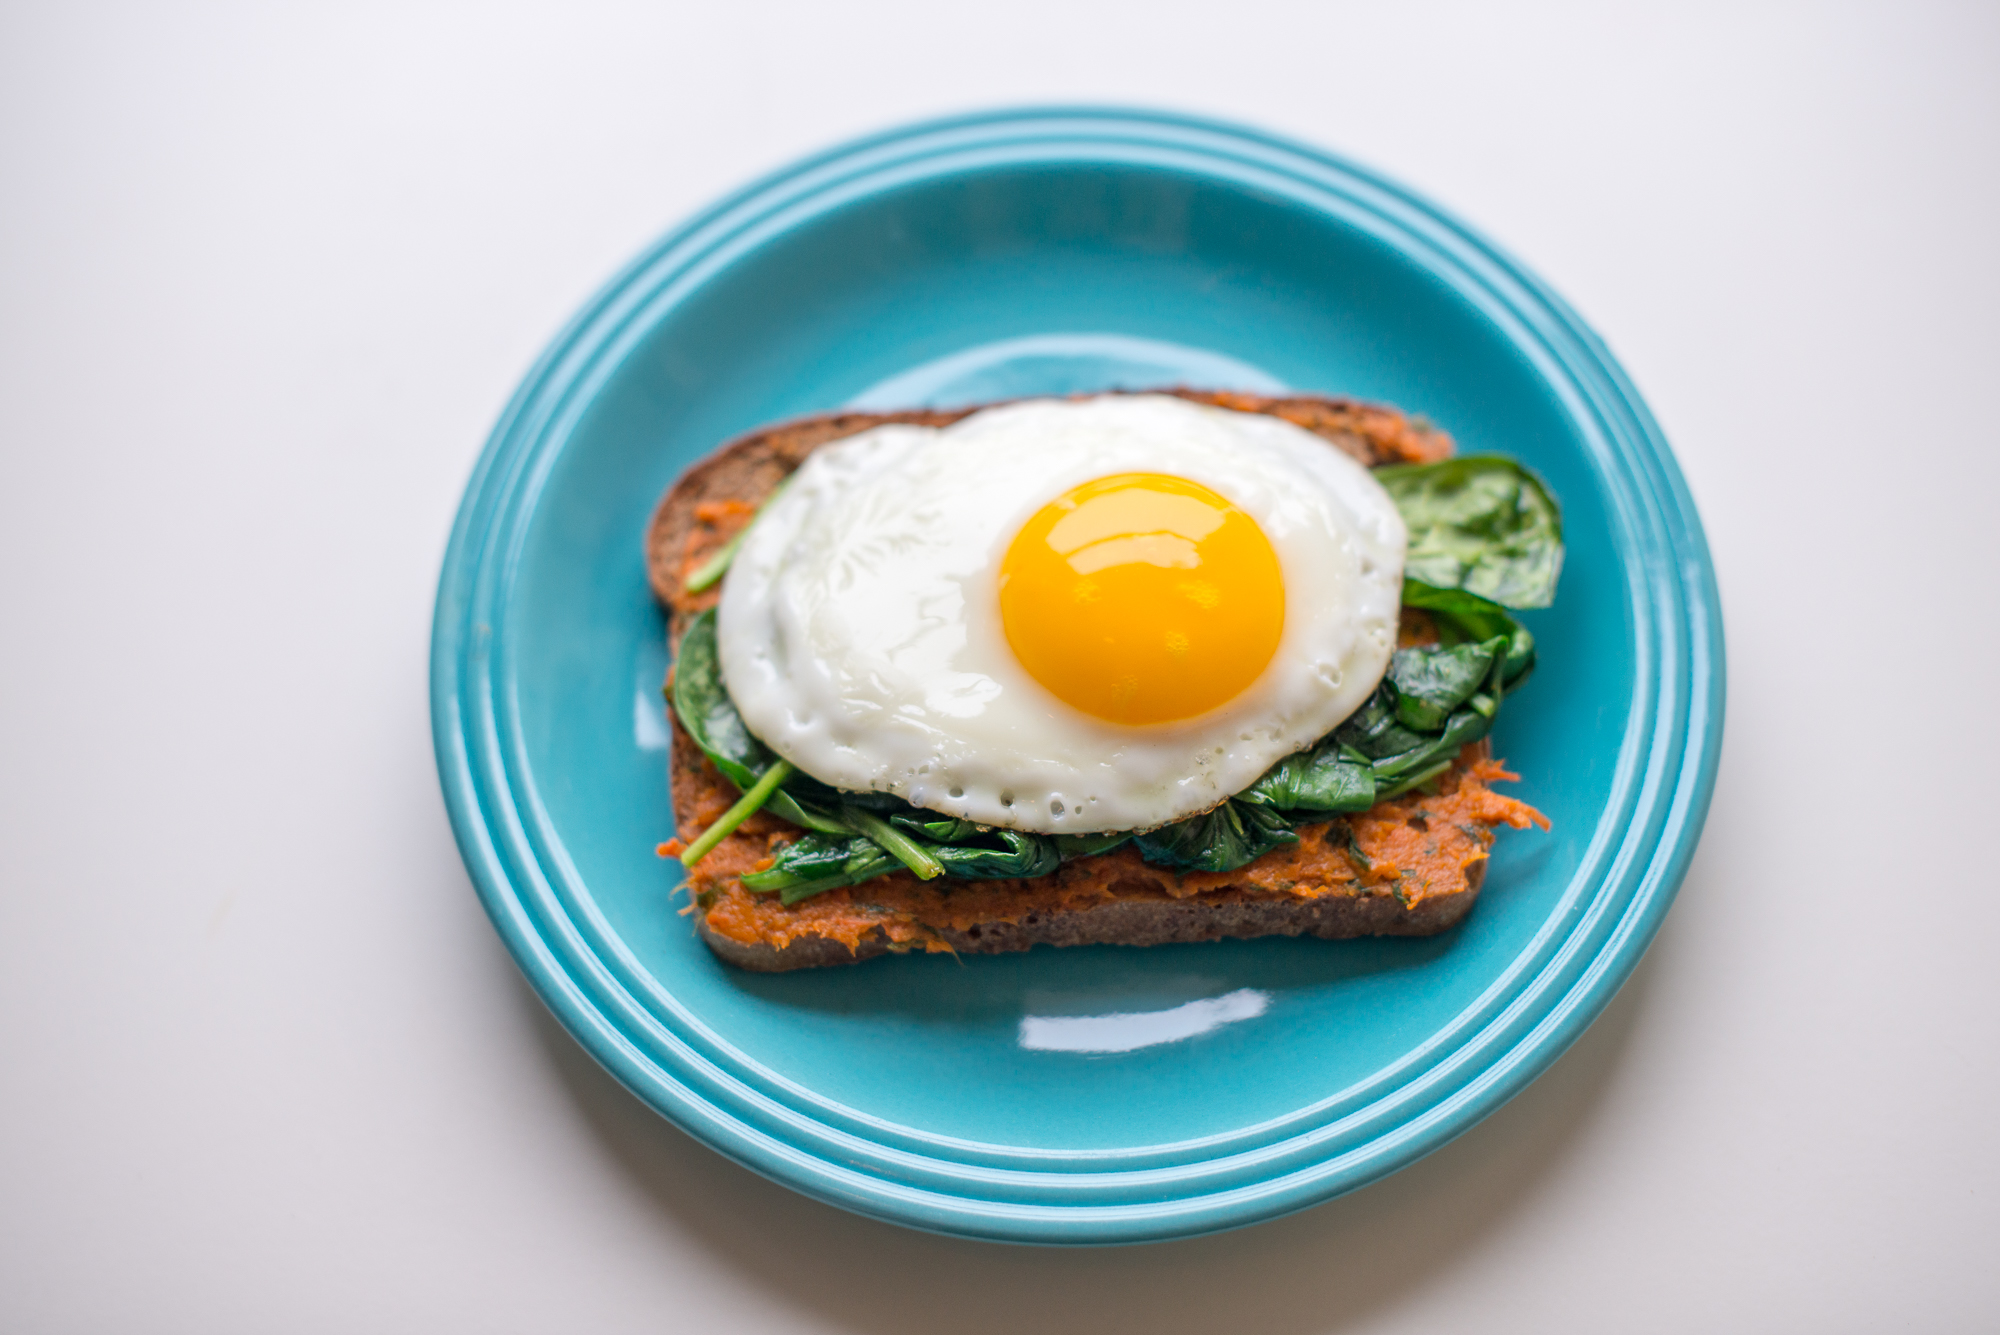 Classic Egg Sandwich With Roasted Carrot Basil Spread